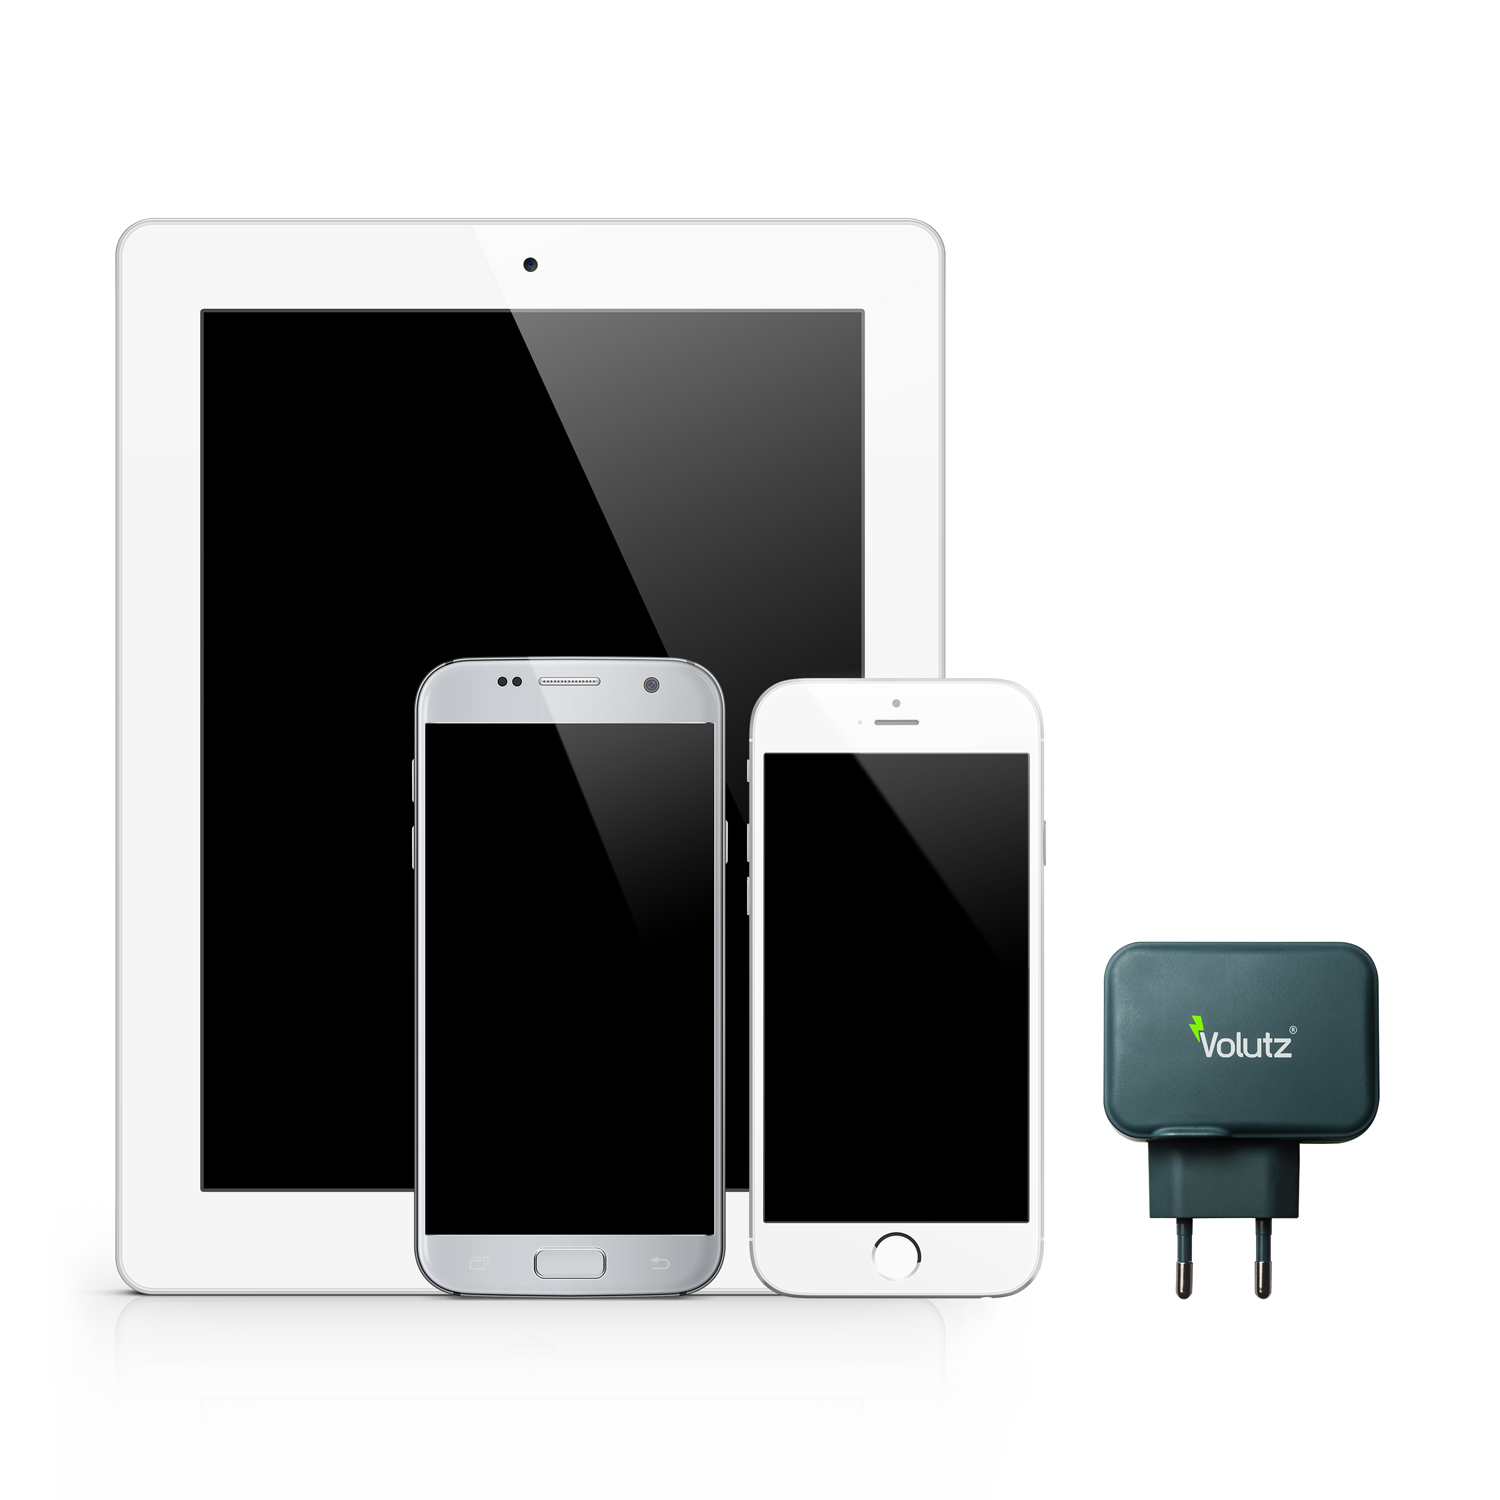 devices-comparation-size2.jpg